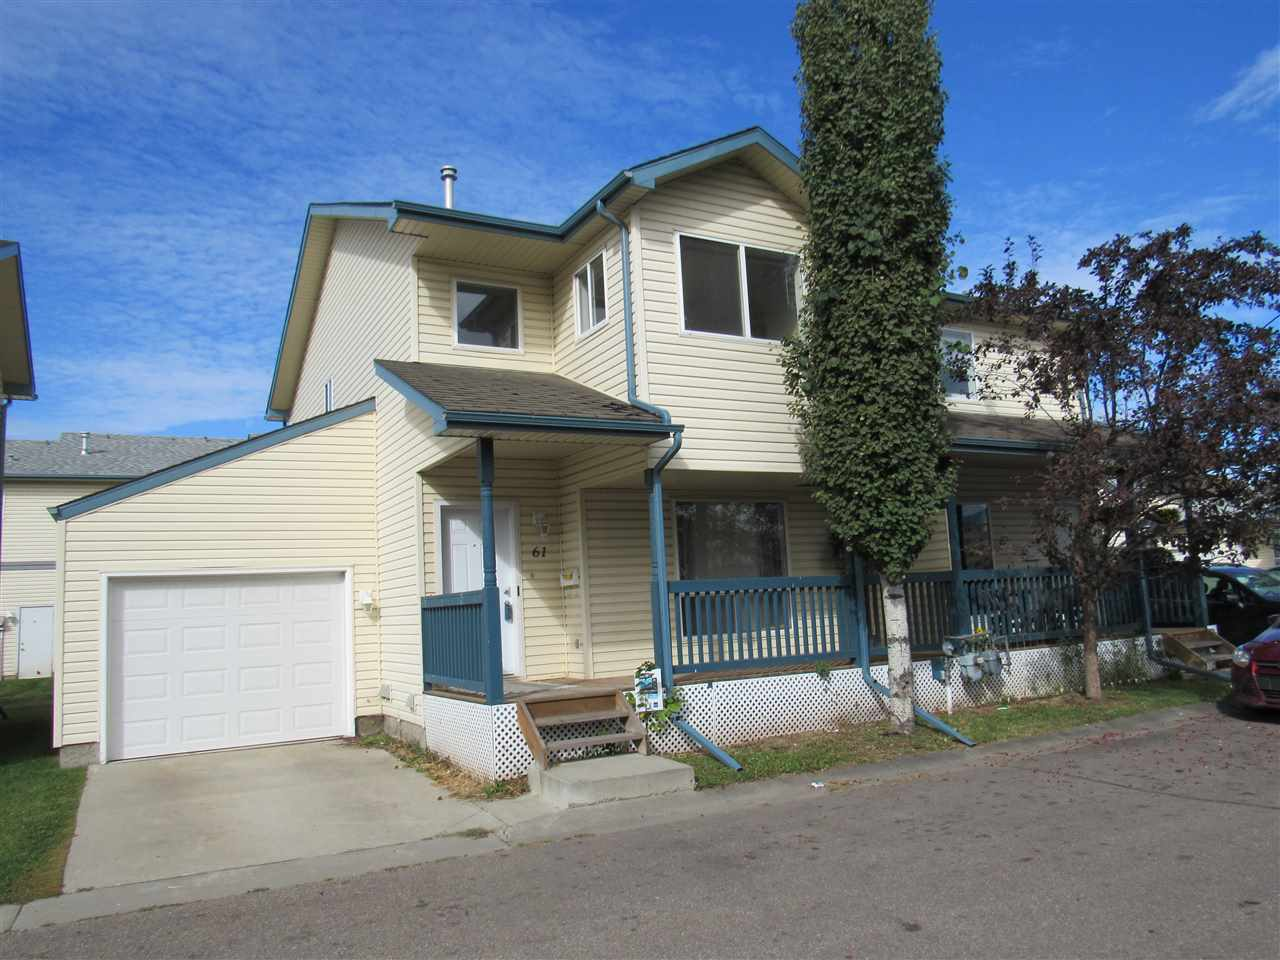 FEATURED LISTING: 61 - 10909 106 Street Edmonton